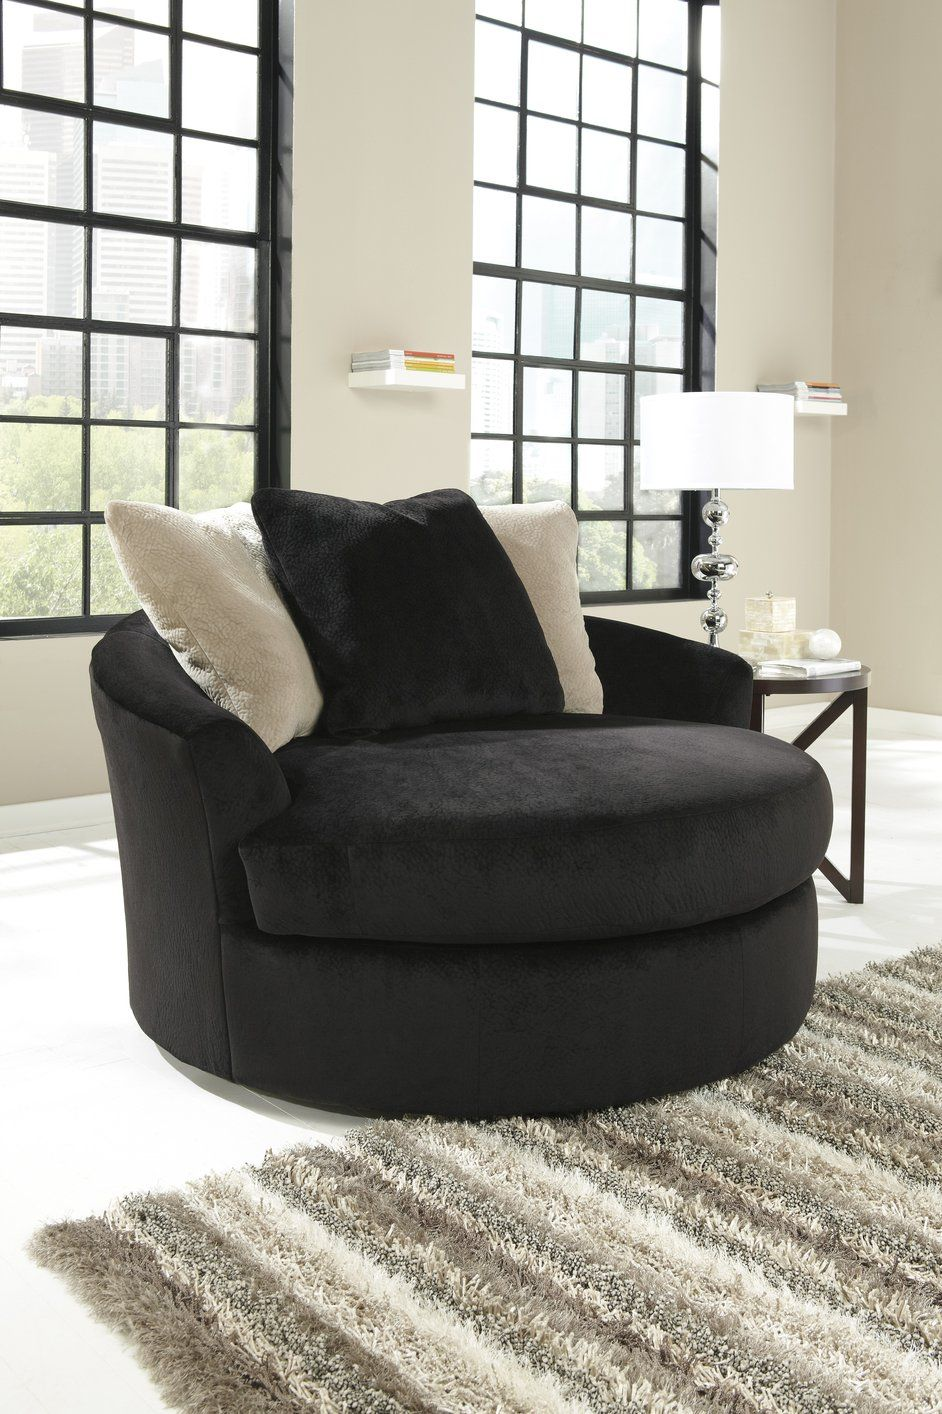 Add Style And Beauty To Your Living Area With A Black Fabric Sofa Round Swivel Chair Accent Chairs For Living Room Wayfair Living Room Chairs #round #swivel #living #room #chairs